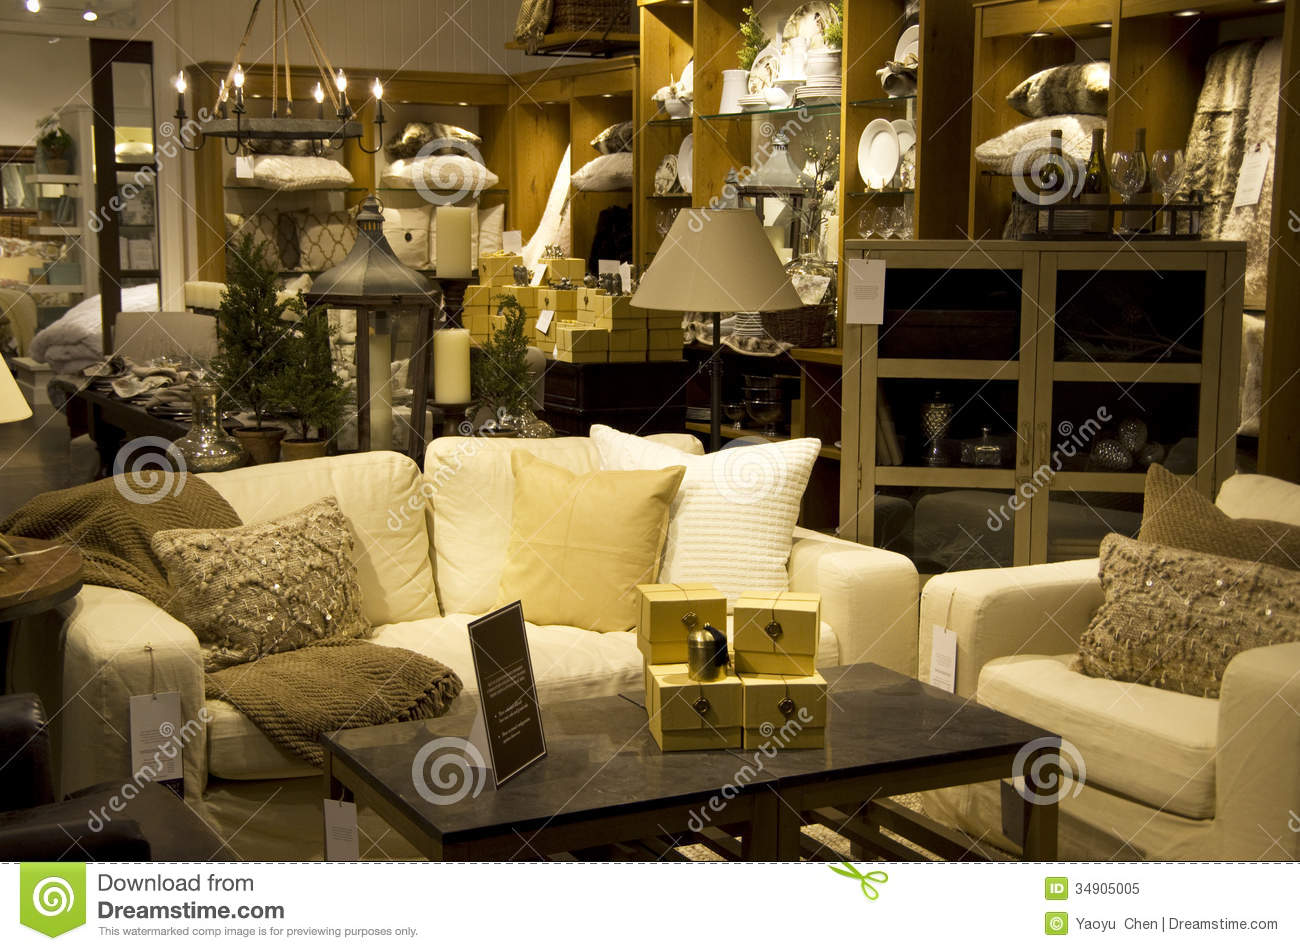 Cheap Home Decor And Furniture hall table cheap home decor more Luxury Furniture Home Decor Store Royalty Free Stock Photo Image